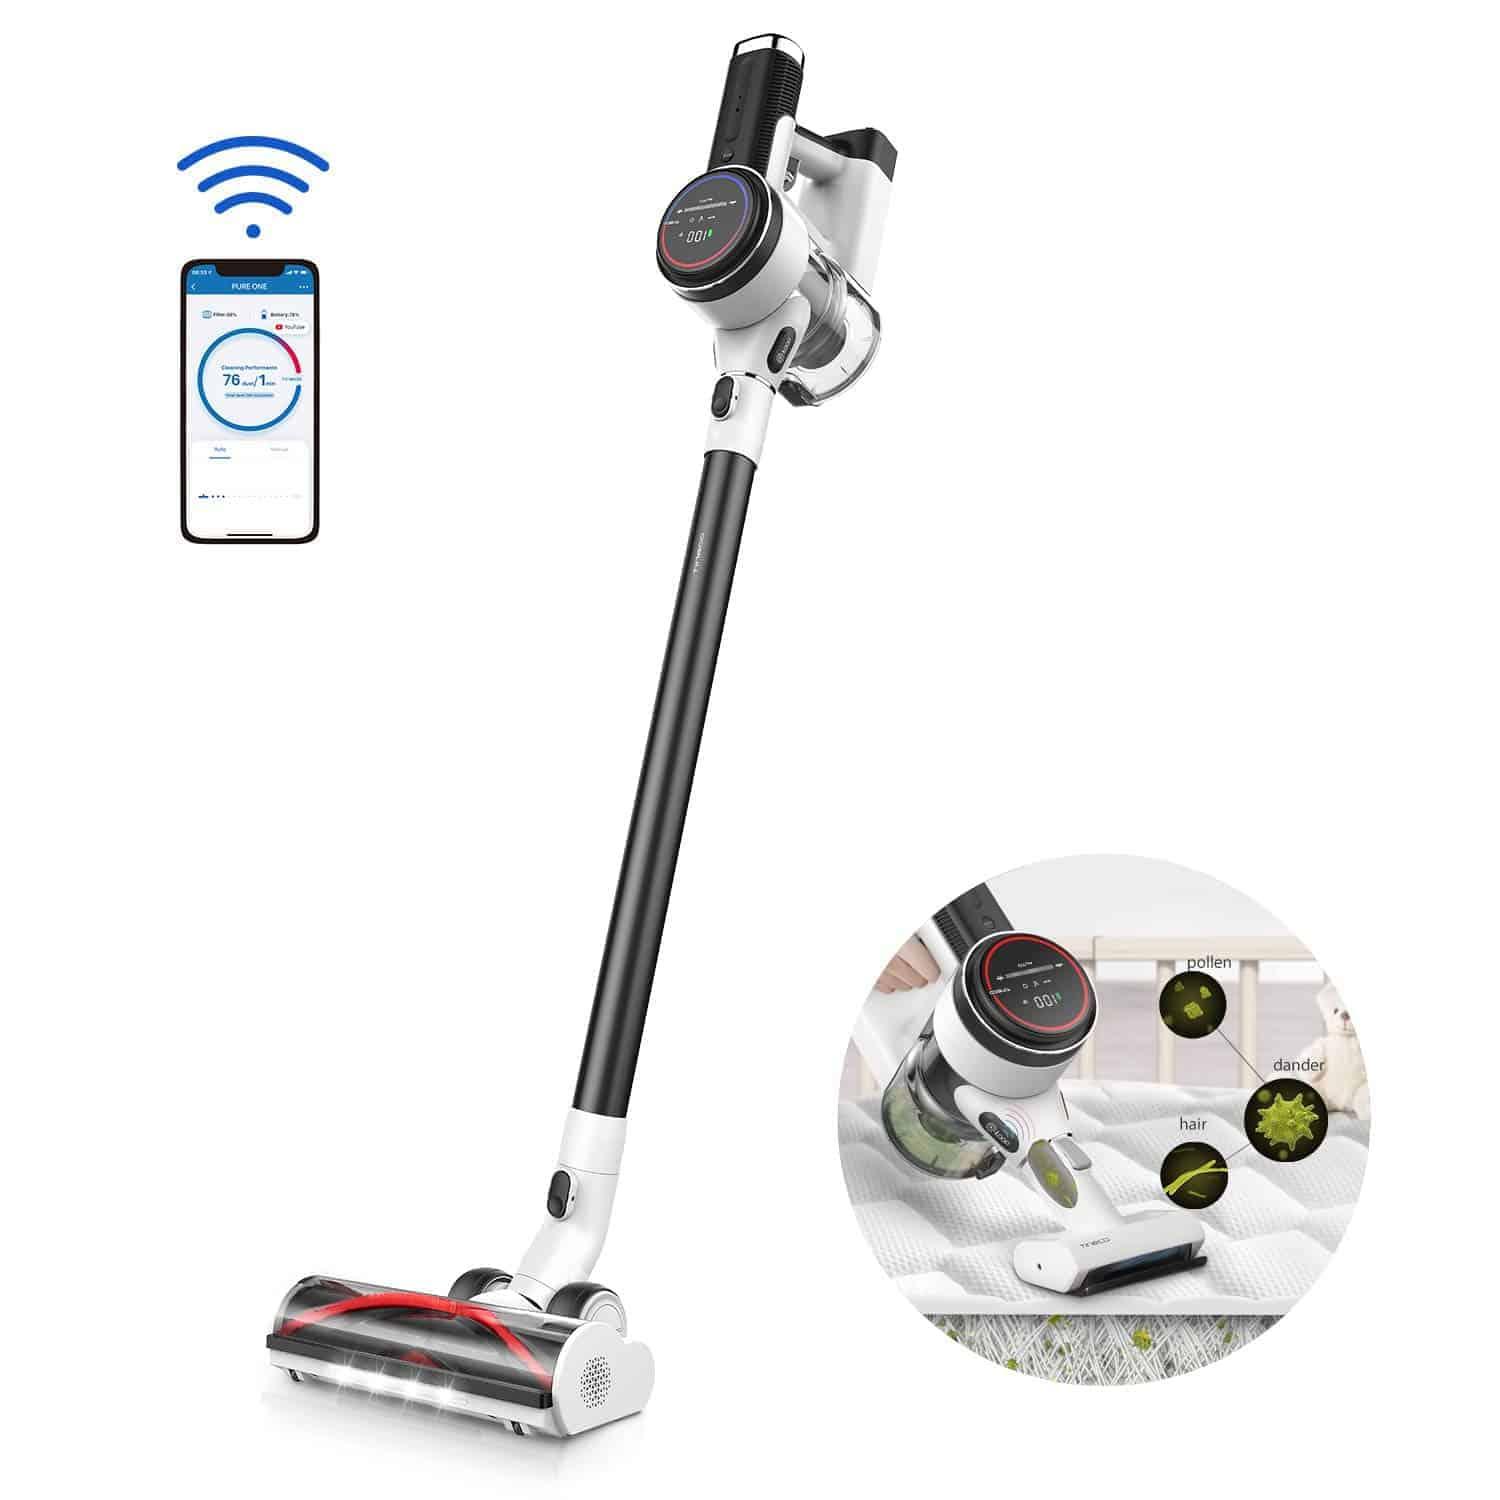 Save up to 30% on the Tineco A10 Hero and PureOne S12 Stick Vac - Amazon